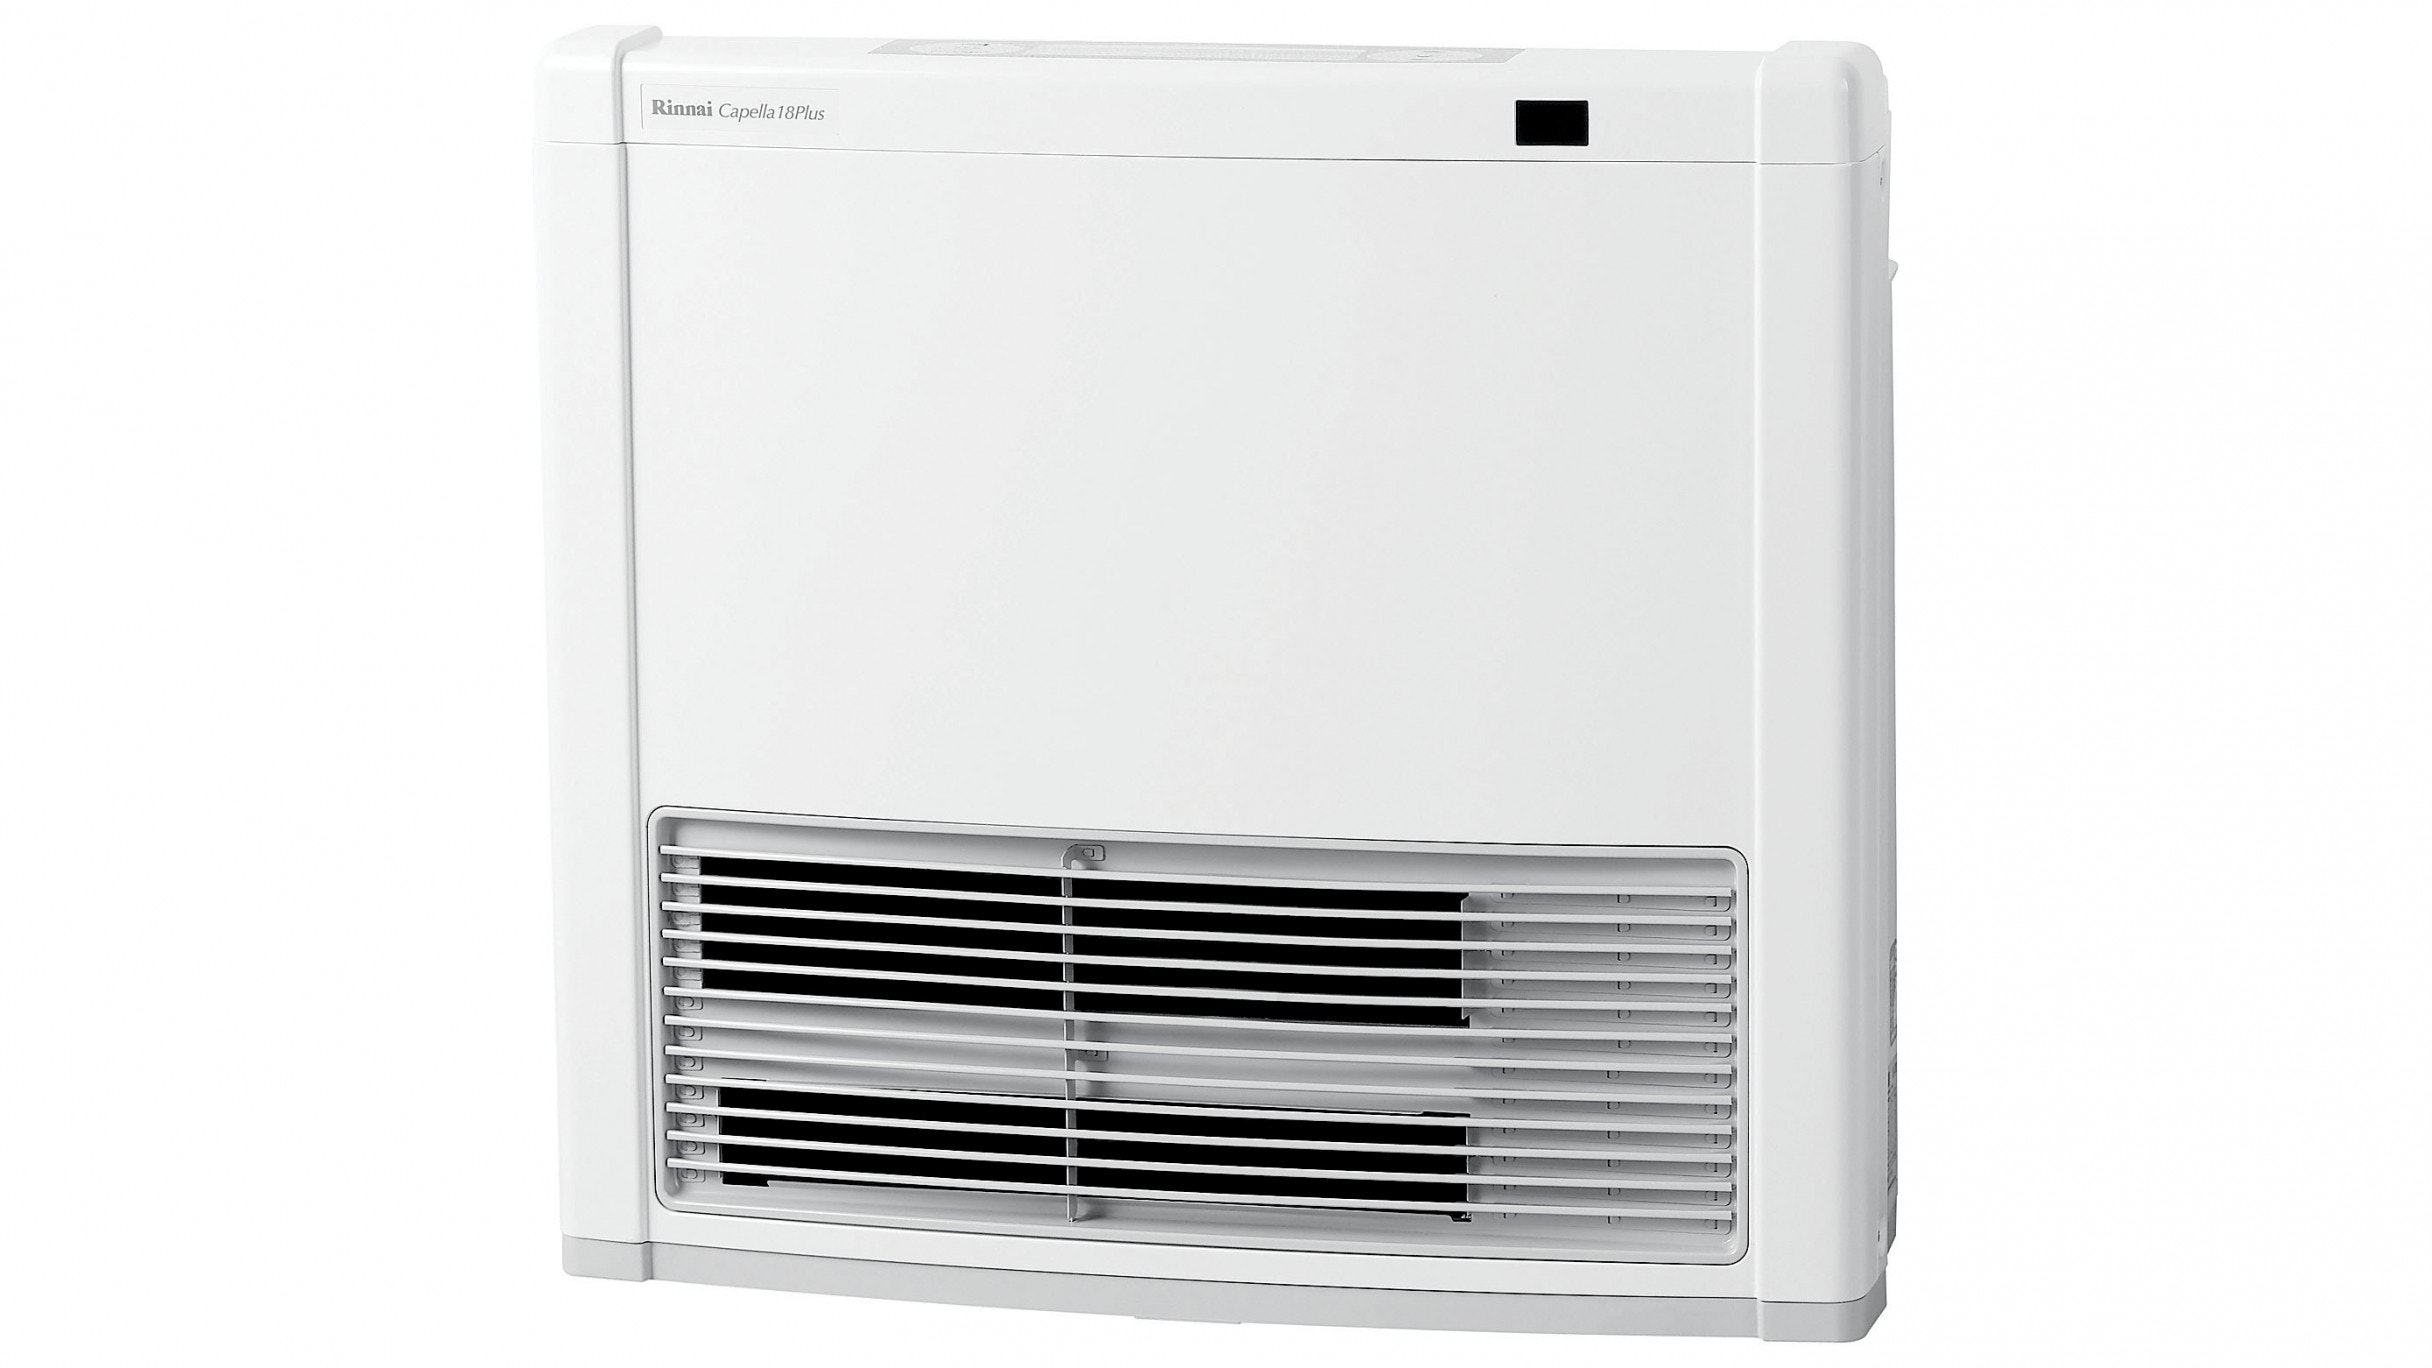 Rinnai Capella 18 Plus LPG Convertor Heater - White